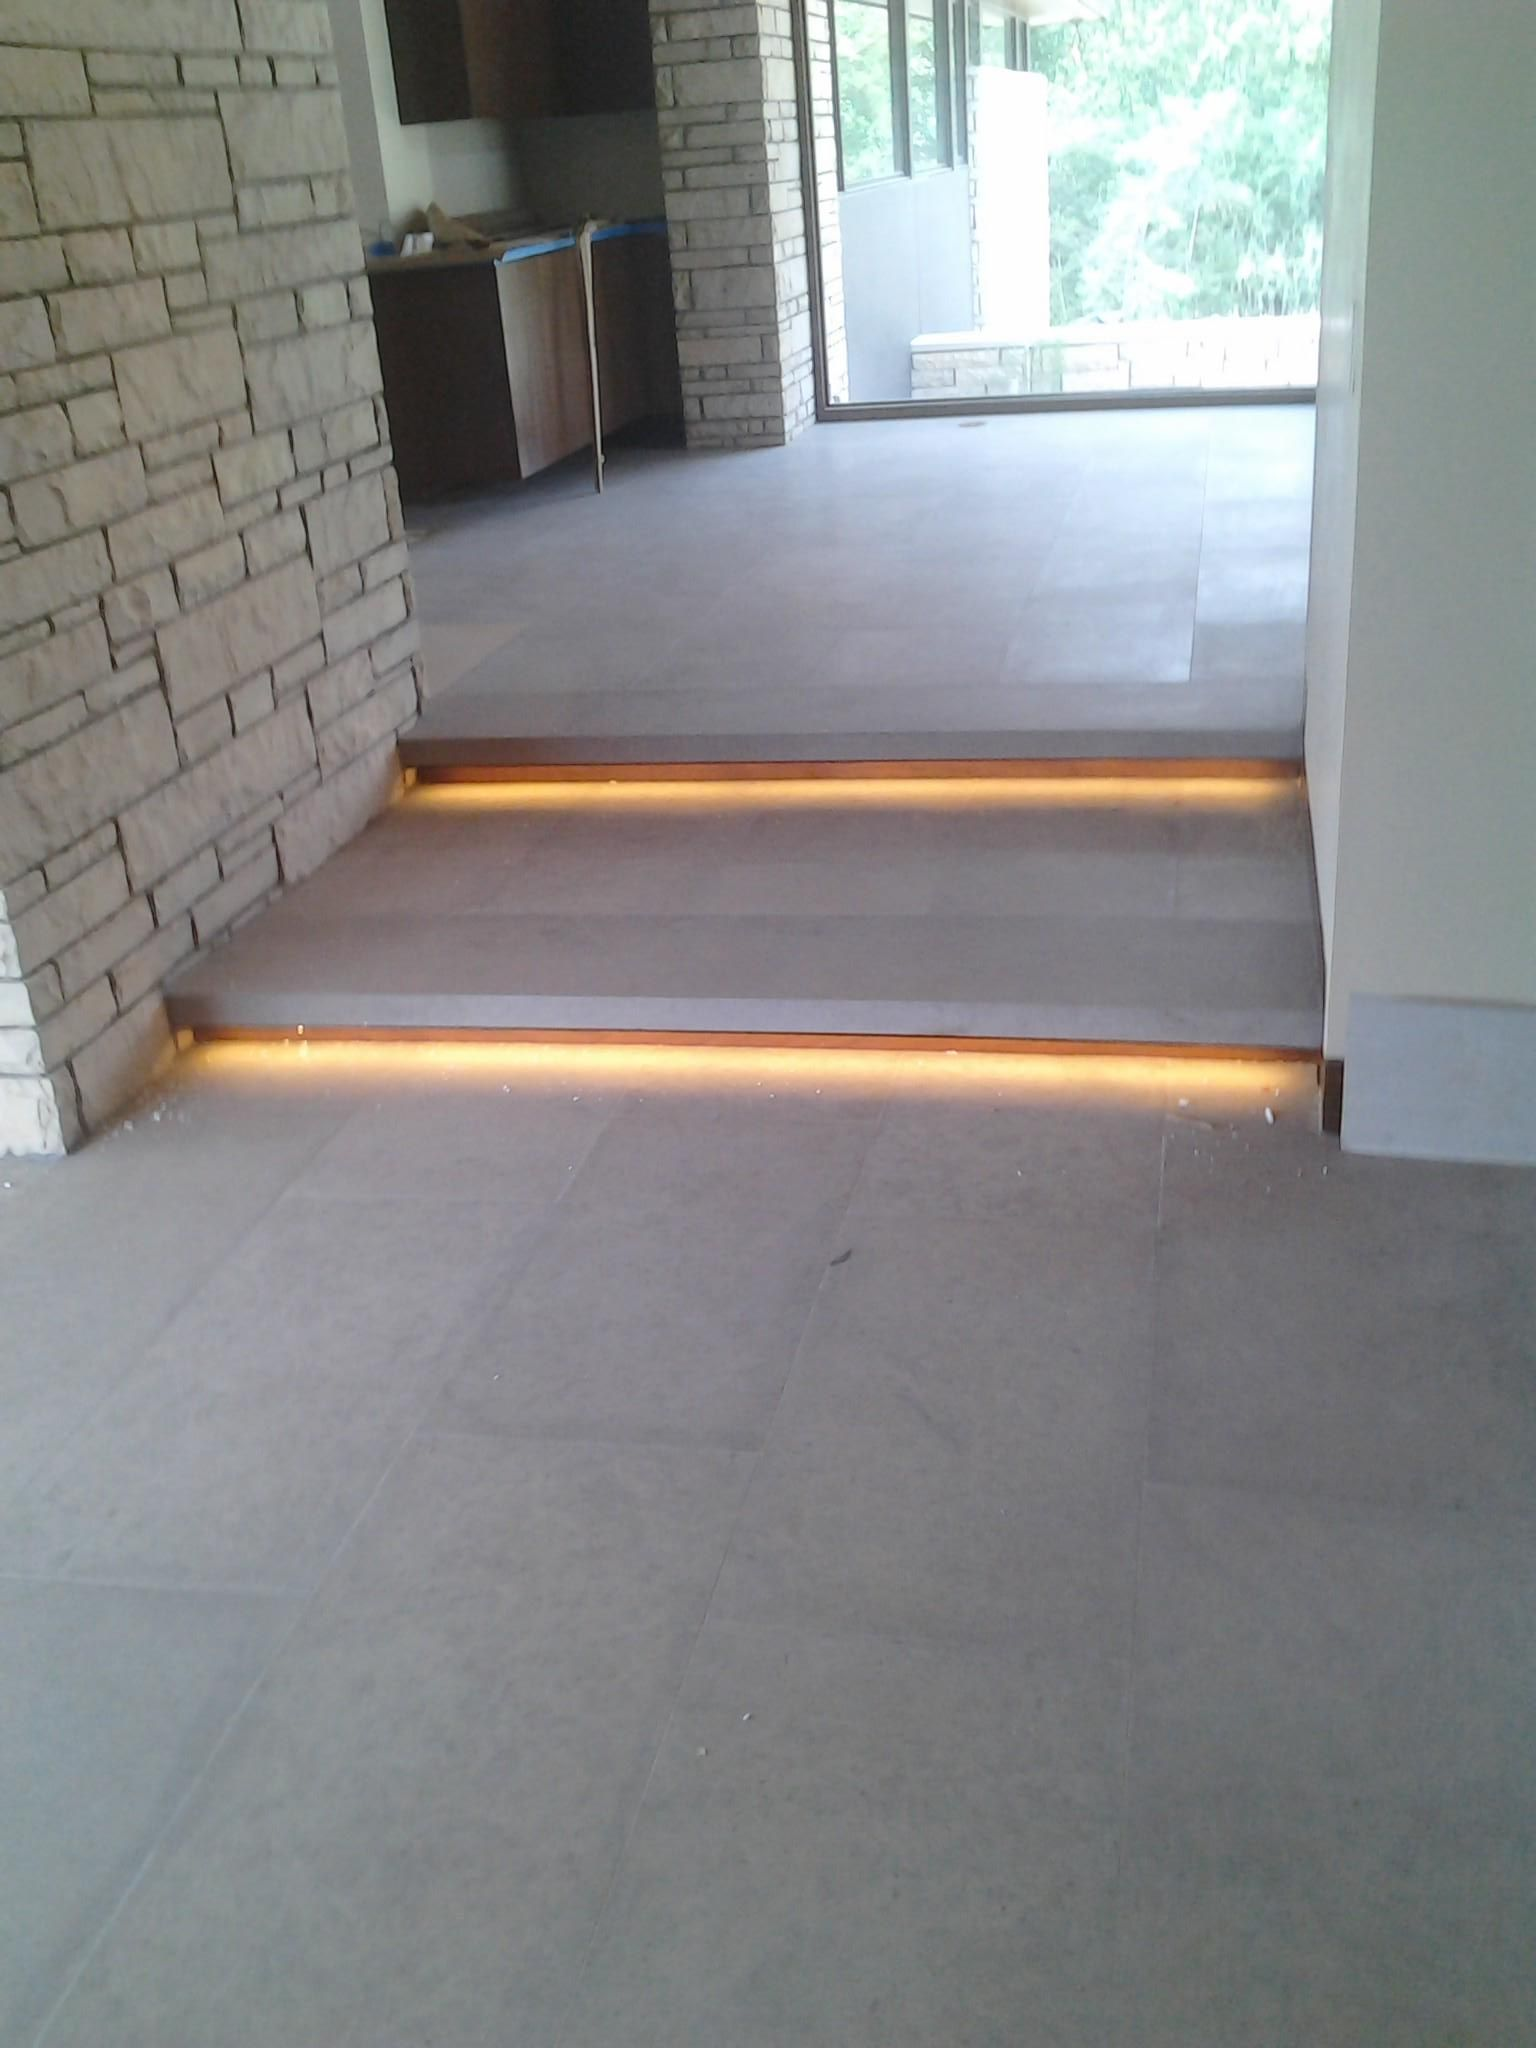 Led Step Lighting Brilliant Led Step Lights  Cool & Interesting Products  Pinterest  Lights Decorating Inspiration